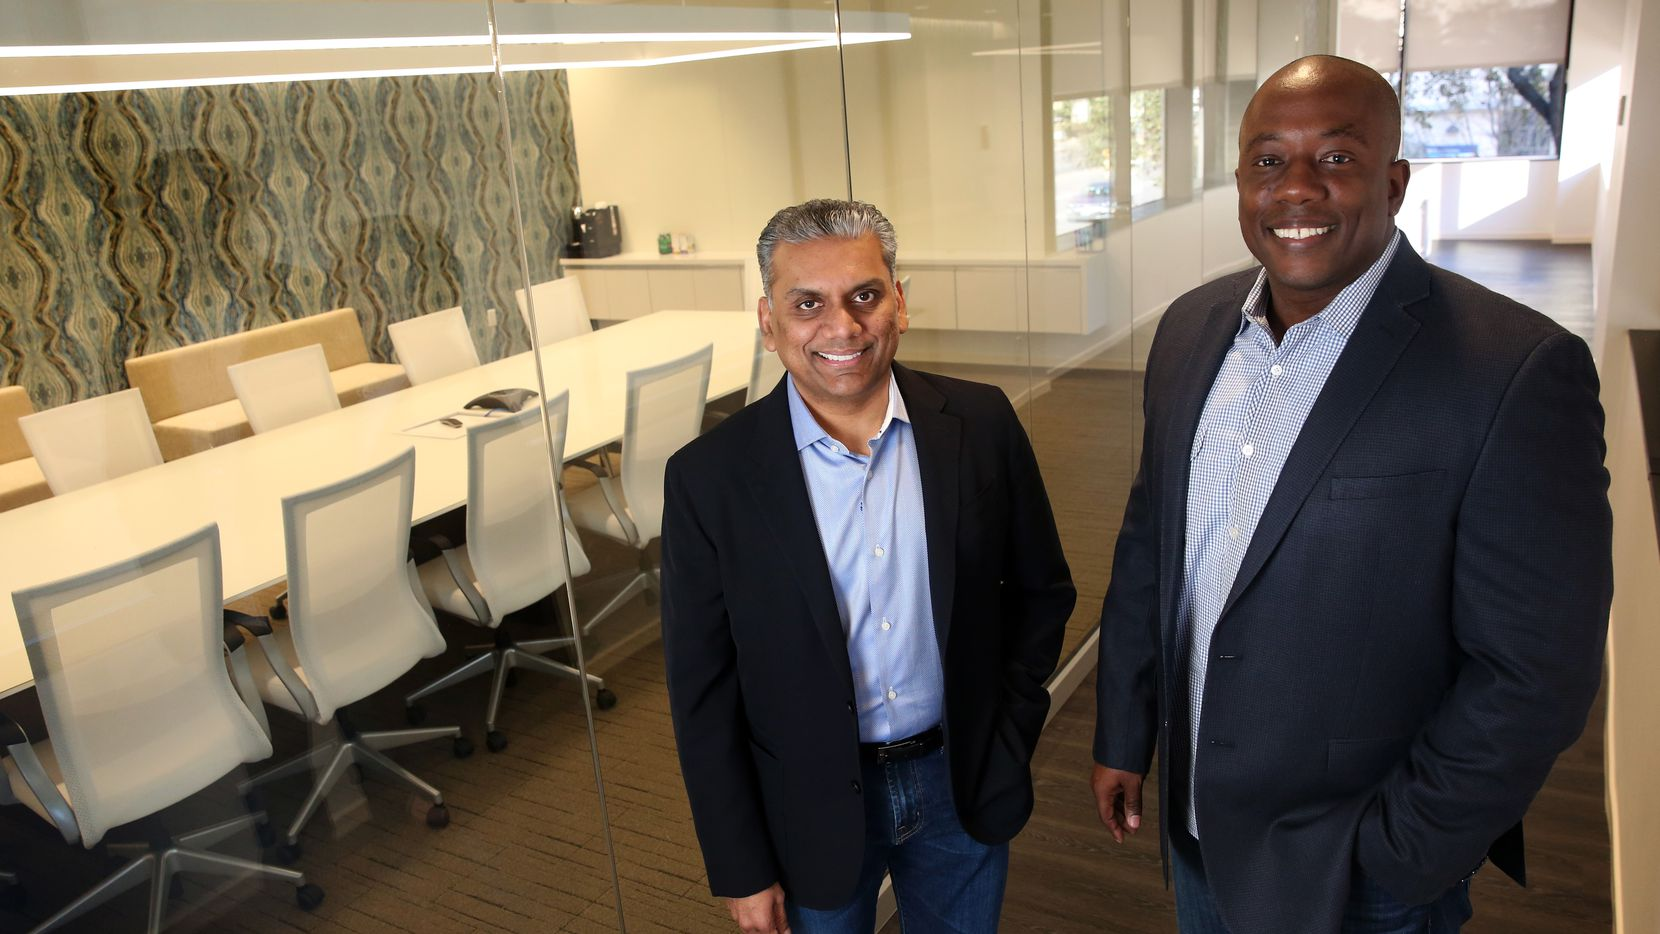 Business partners Anurag Jain (left) and Joe Beard pose for a photograph at Perot Jain, a tech investment firm, in Dallas on Thursday, Feb. 9, 2017. (Rose Baca/The Dallas Morning News)